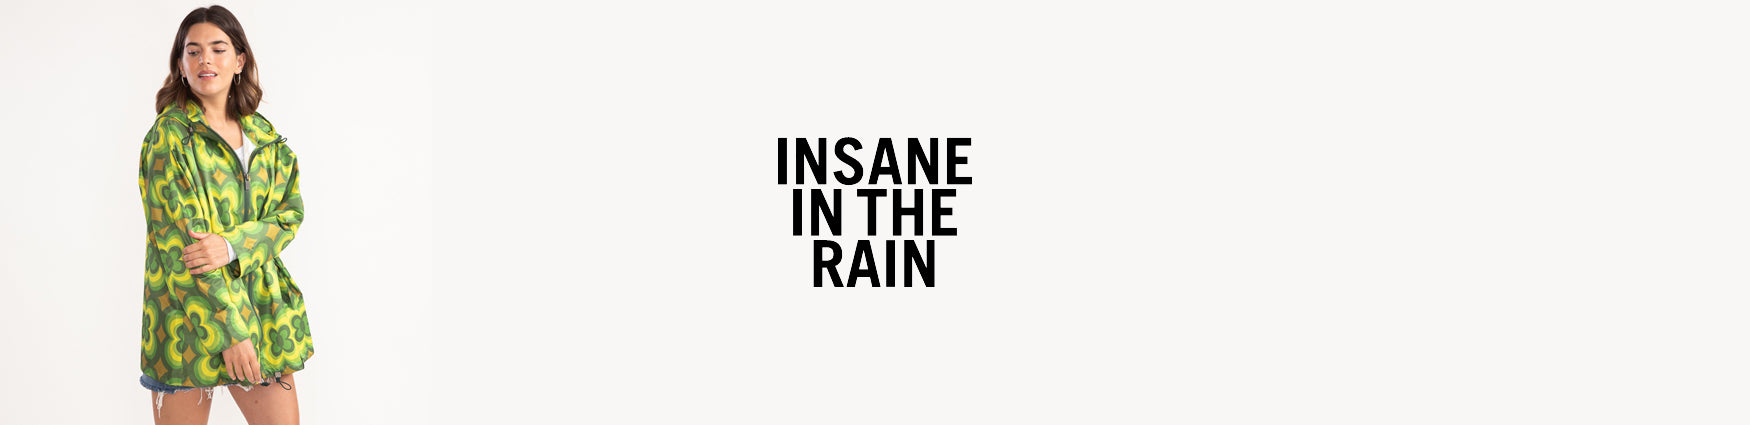 Insane In The Rain | 100% waterproof rain jackets | Shop online from Roo's Beach UK